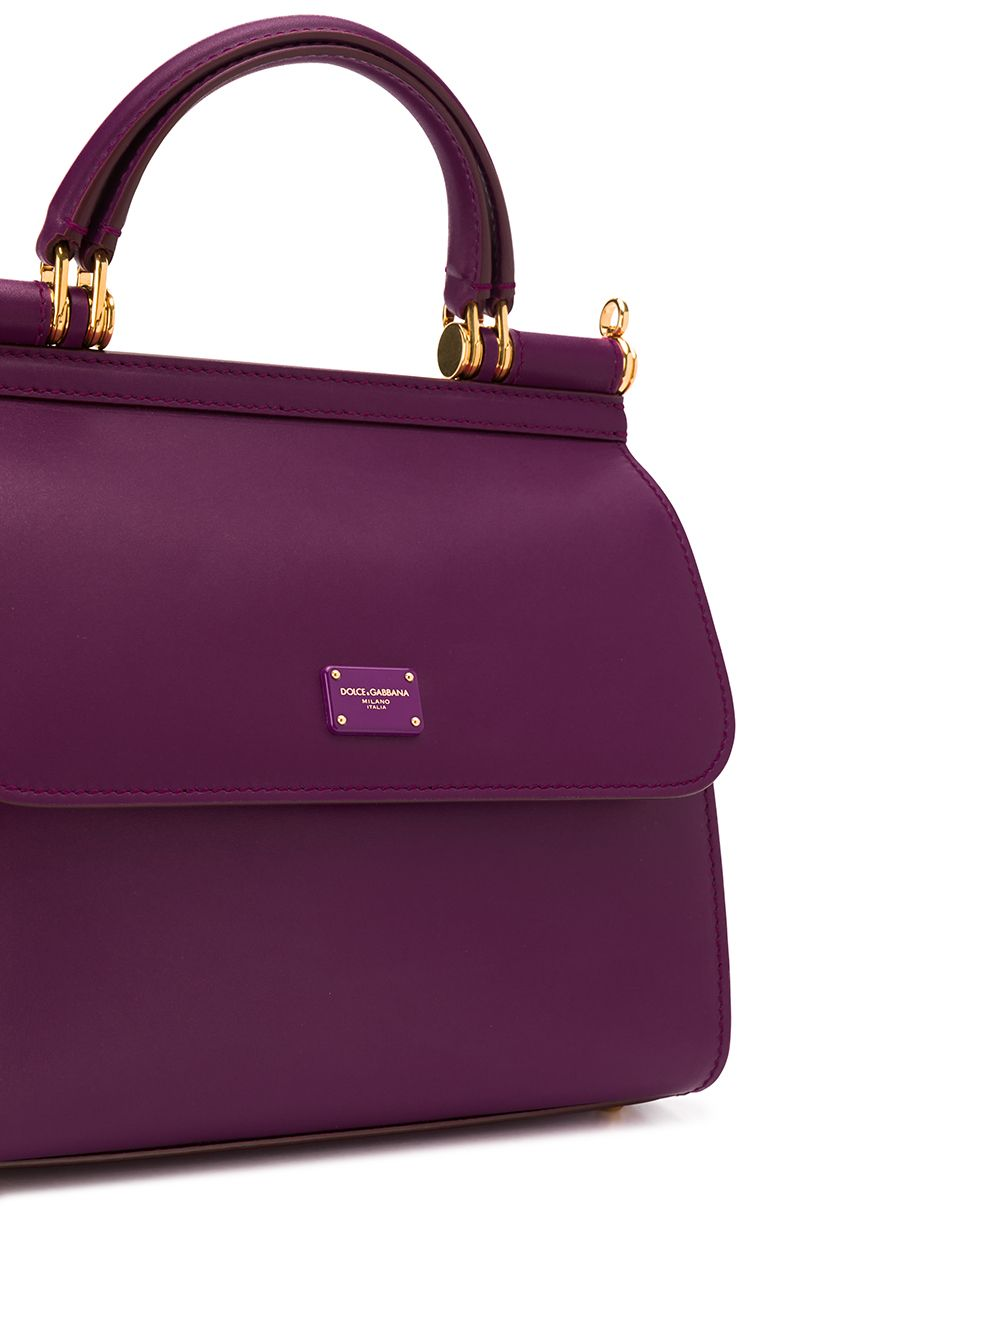 Sicily 58 tote bag in purple calf leather DOLCE & GABBANA |  | BB6622-AV3858H315